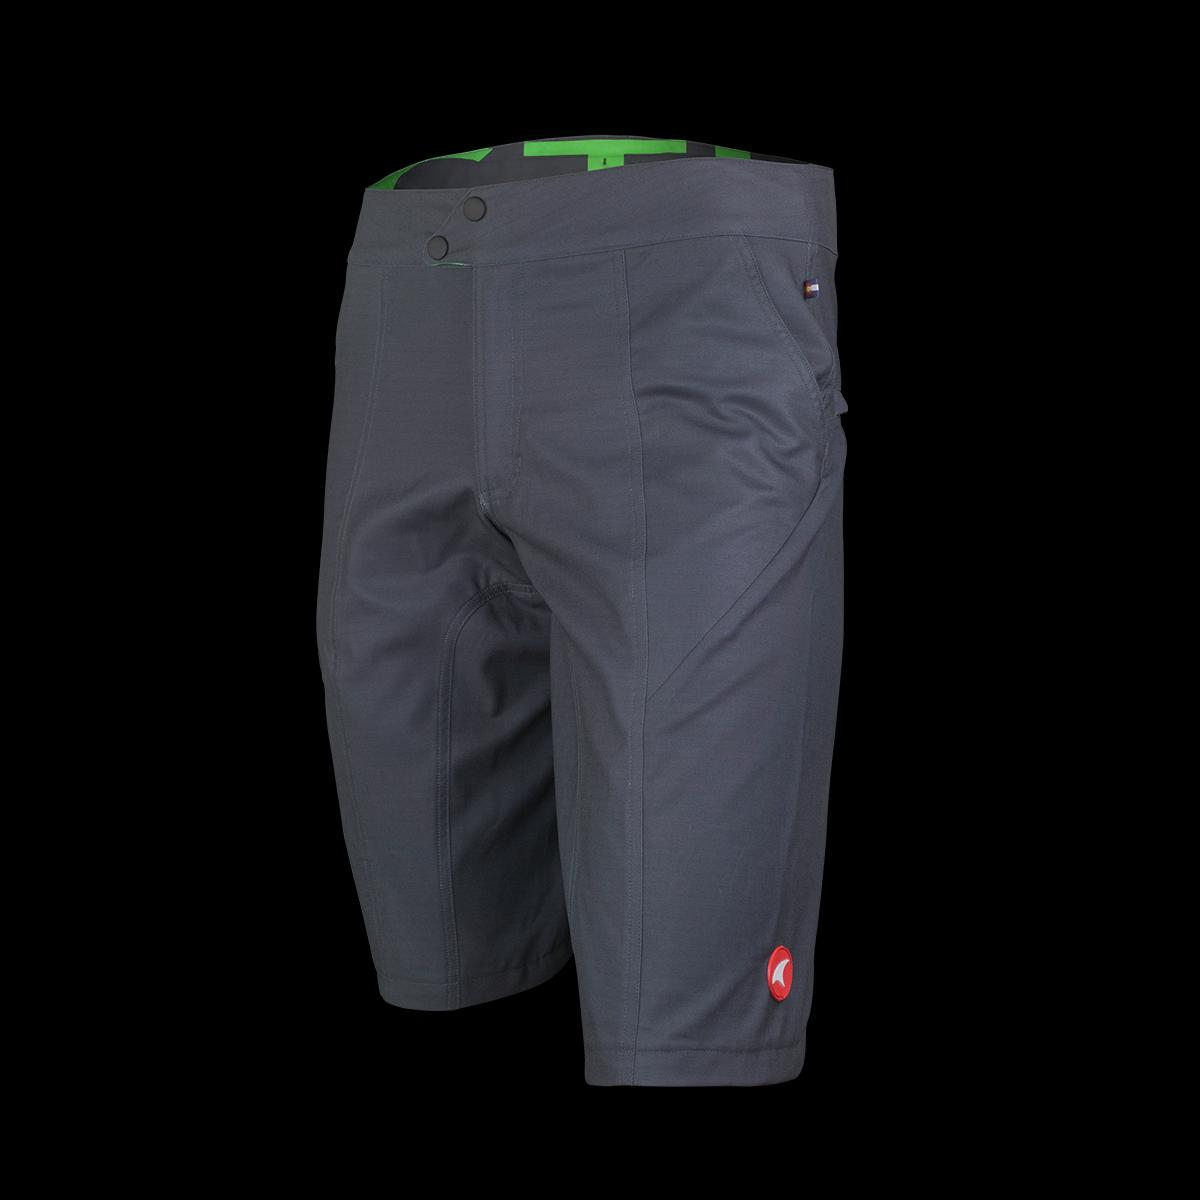 Pactimo Apex Shorts